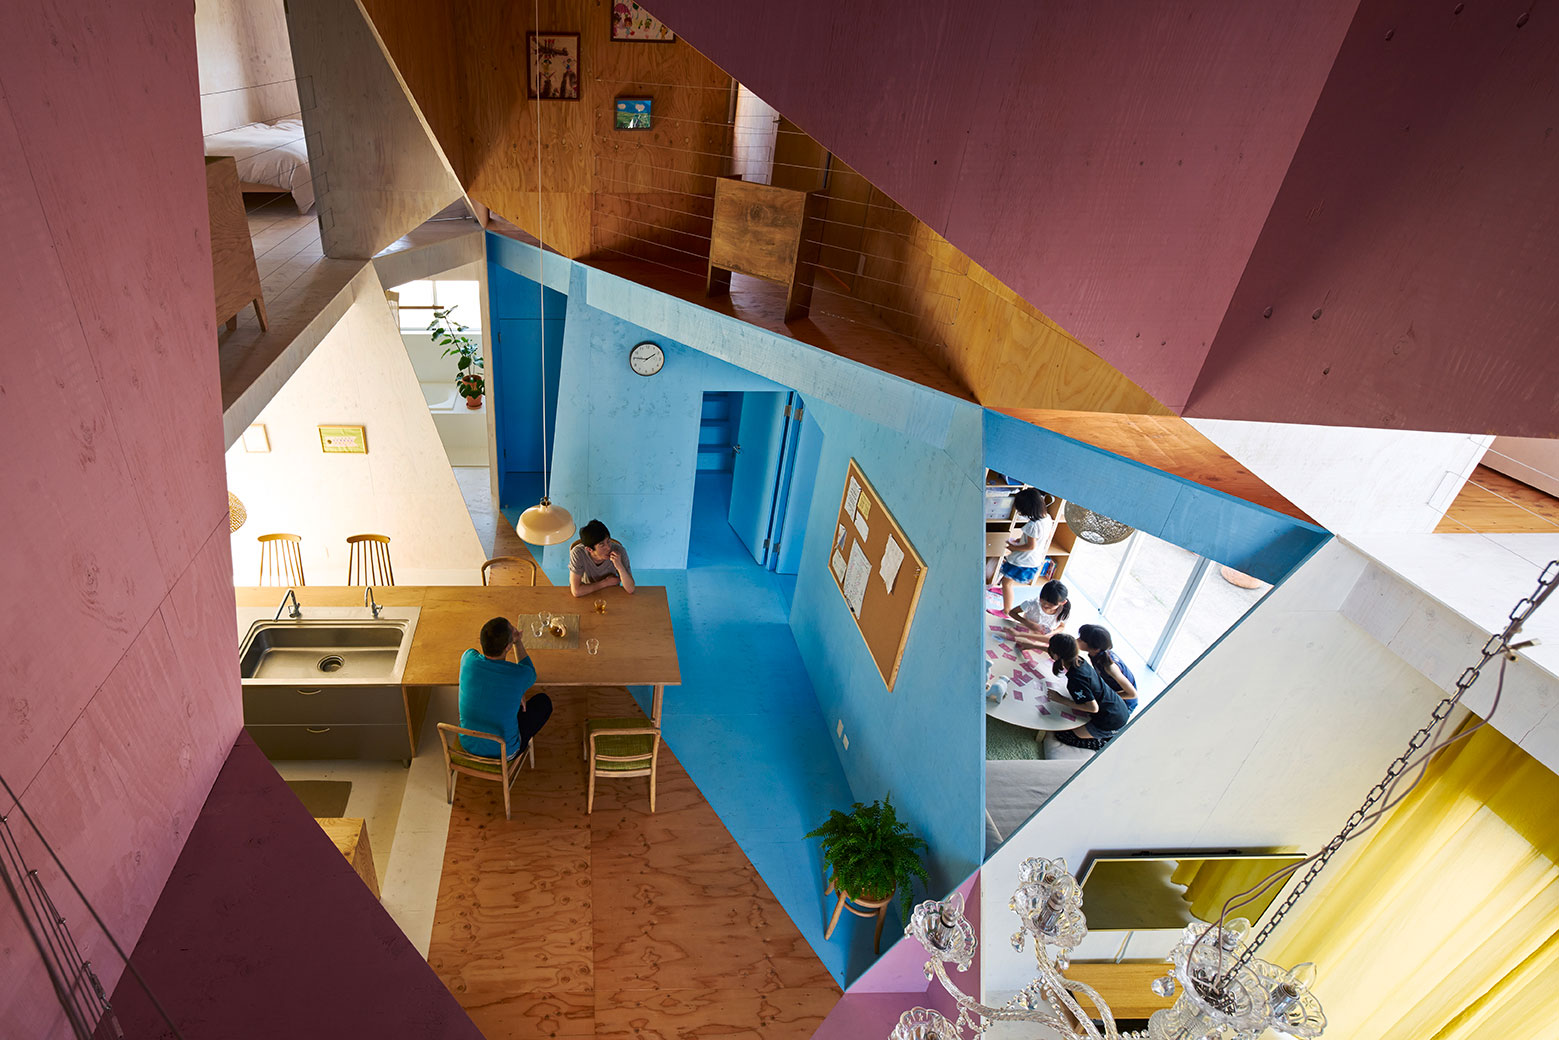 Apartment – House in Tokyo by Kochi Architect's Studio-07